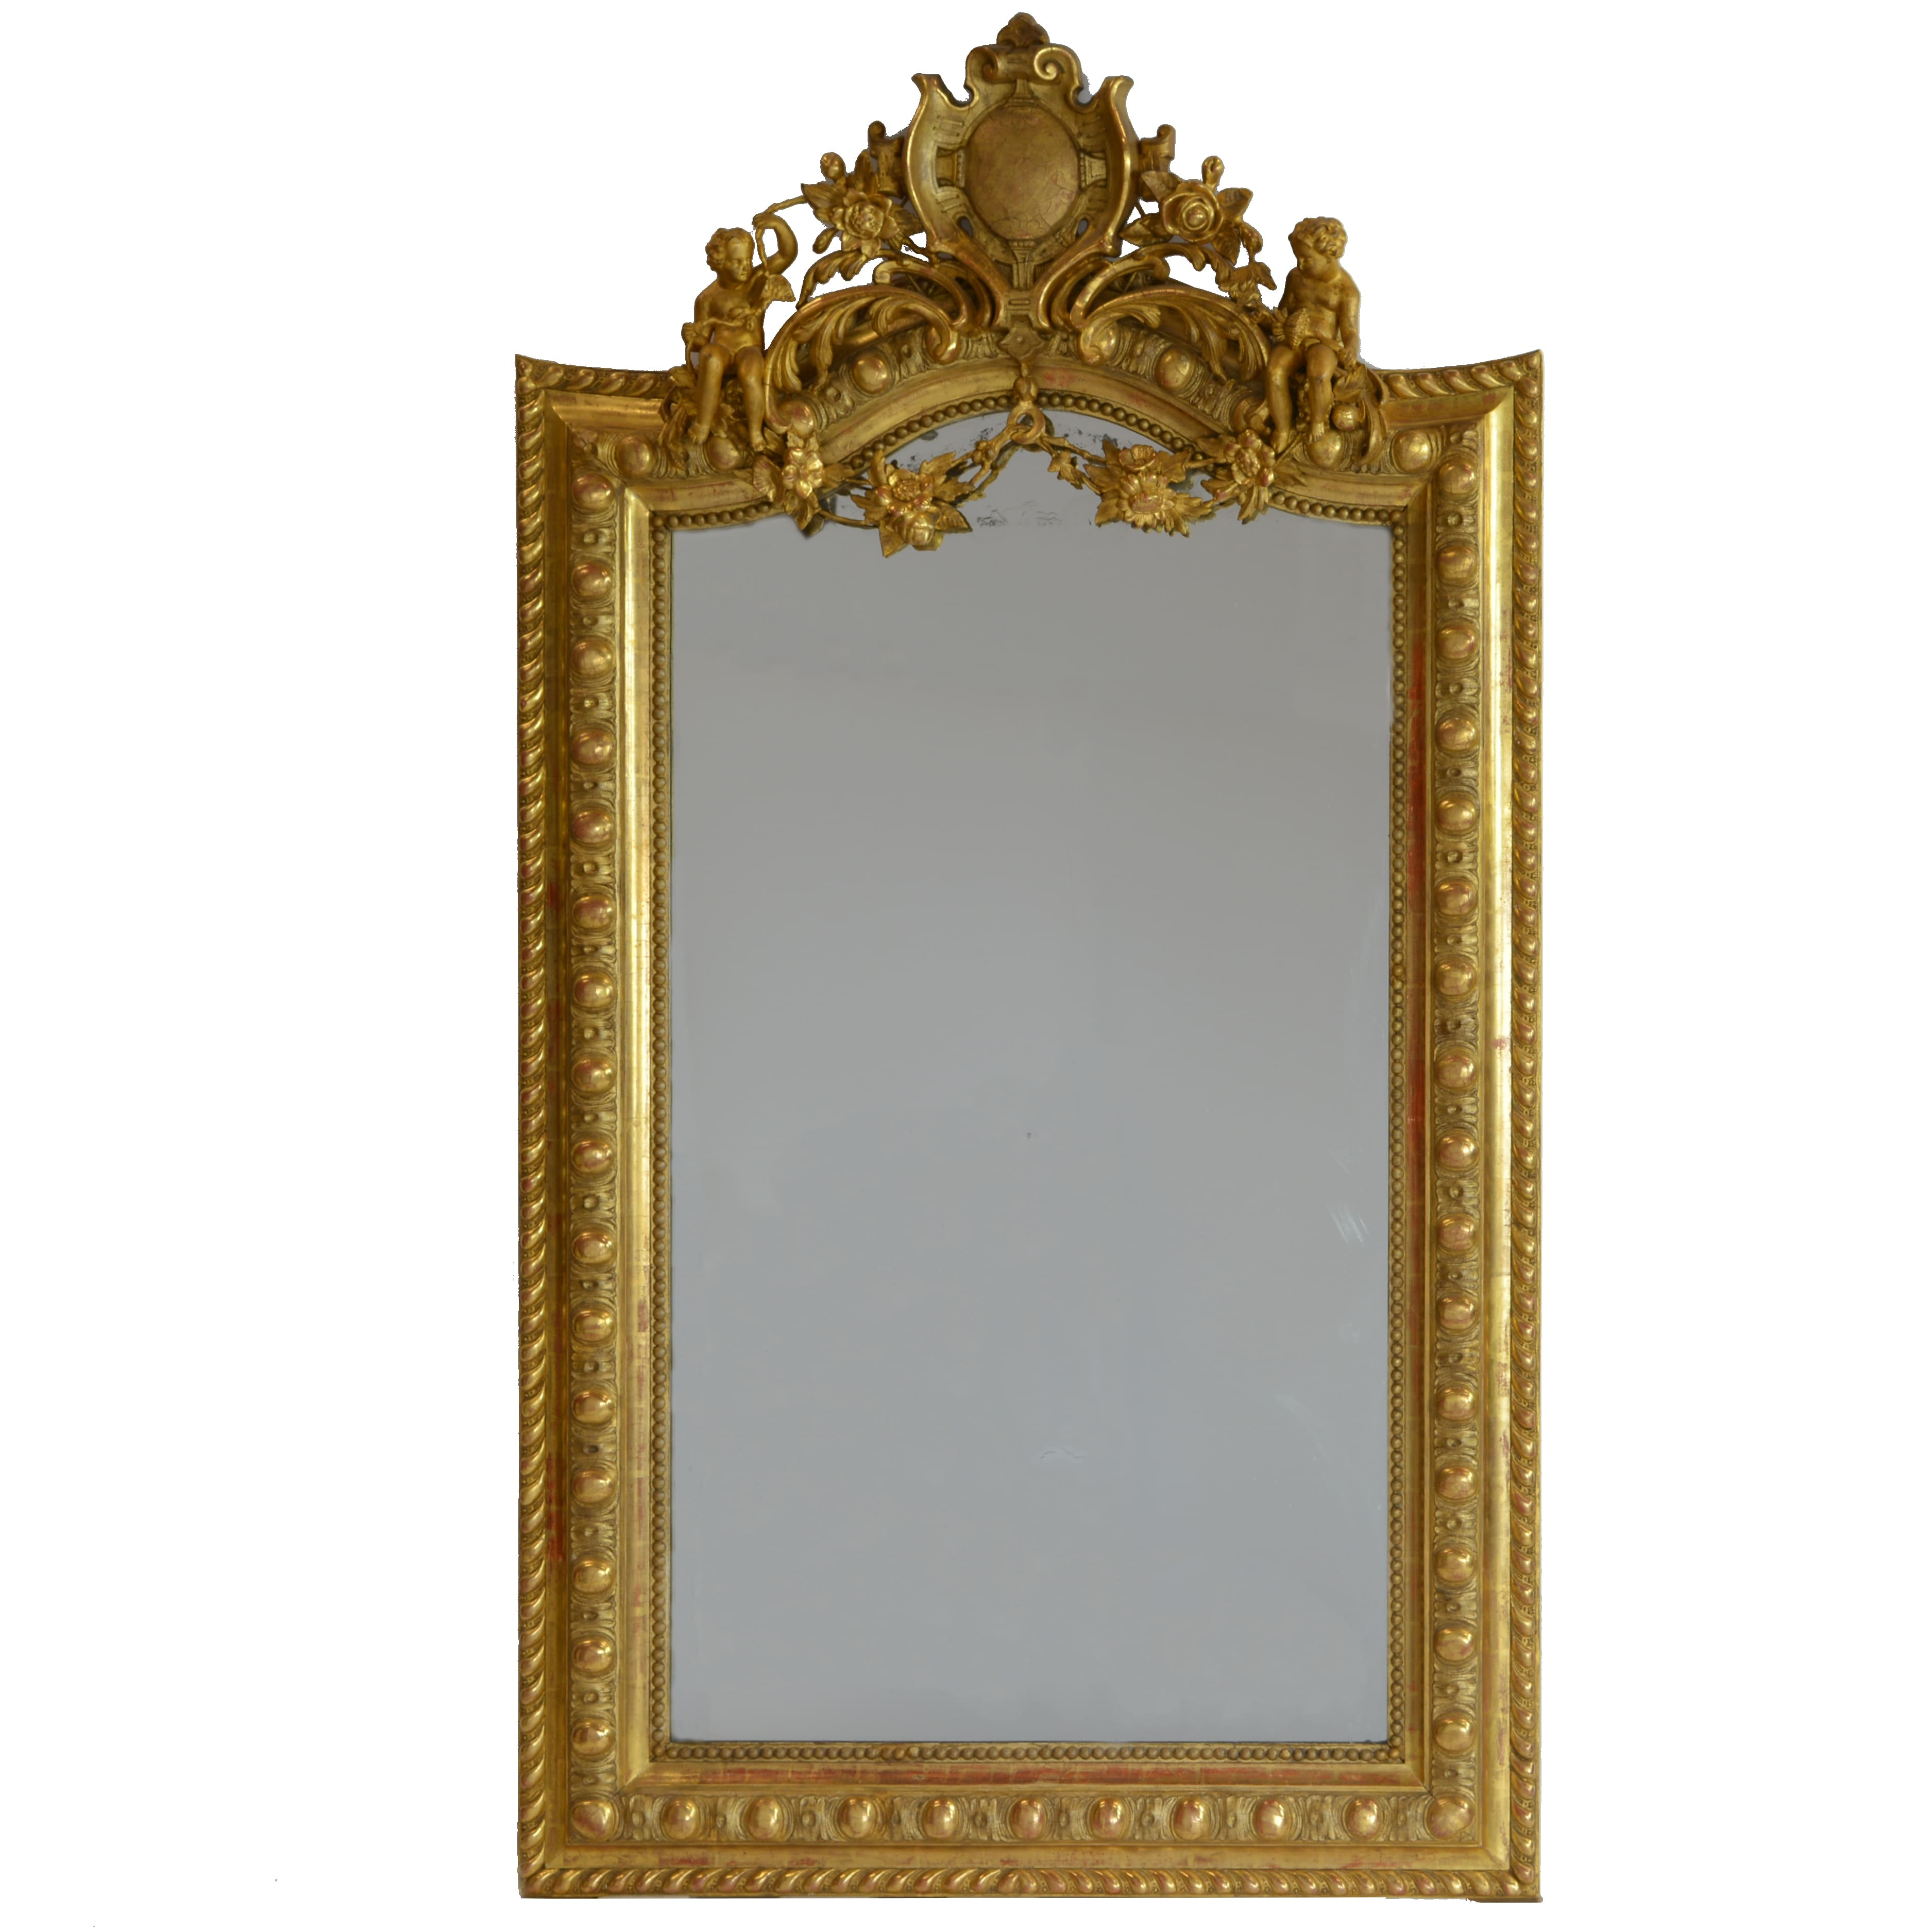 Rare Large French 19th Century Ornate Gilt Wood Carved Mirror